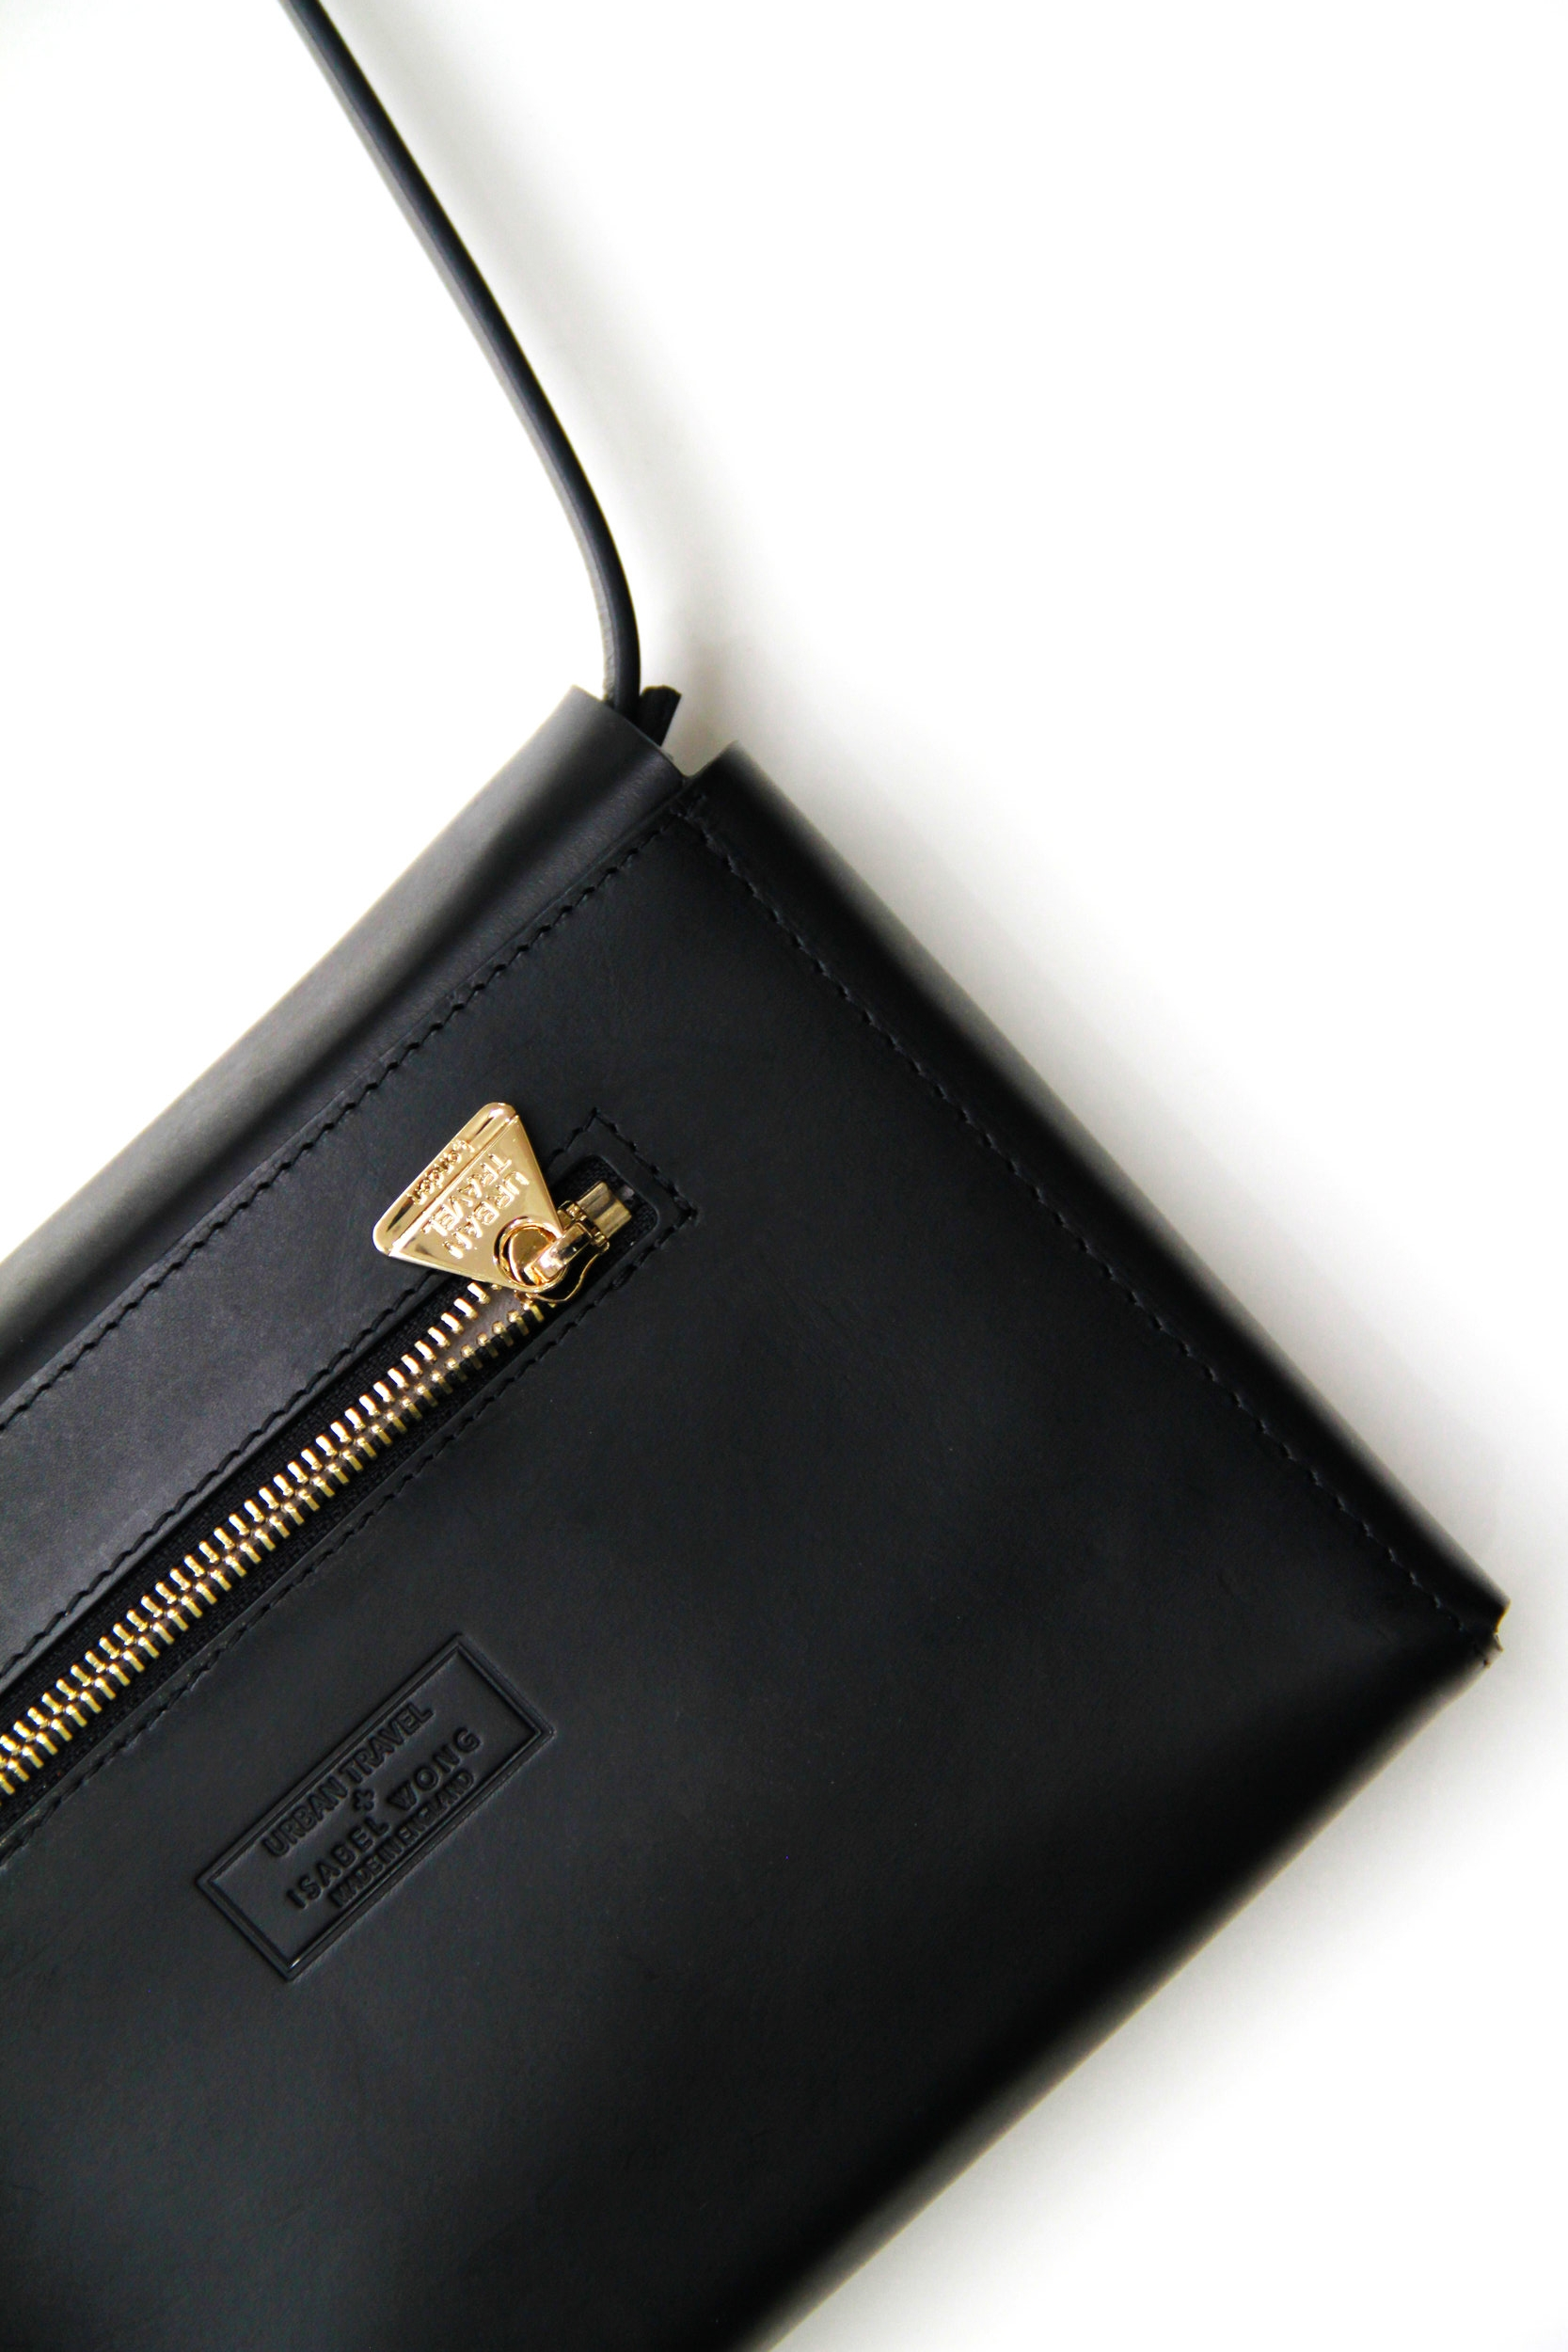 Evo Leather Clutch Black Back View -Urban Travel x Isabel Wong.jpg